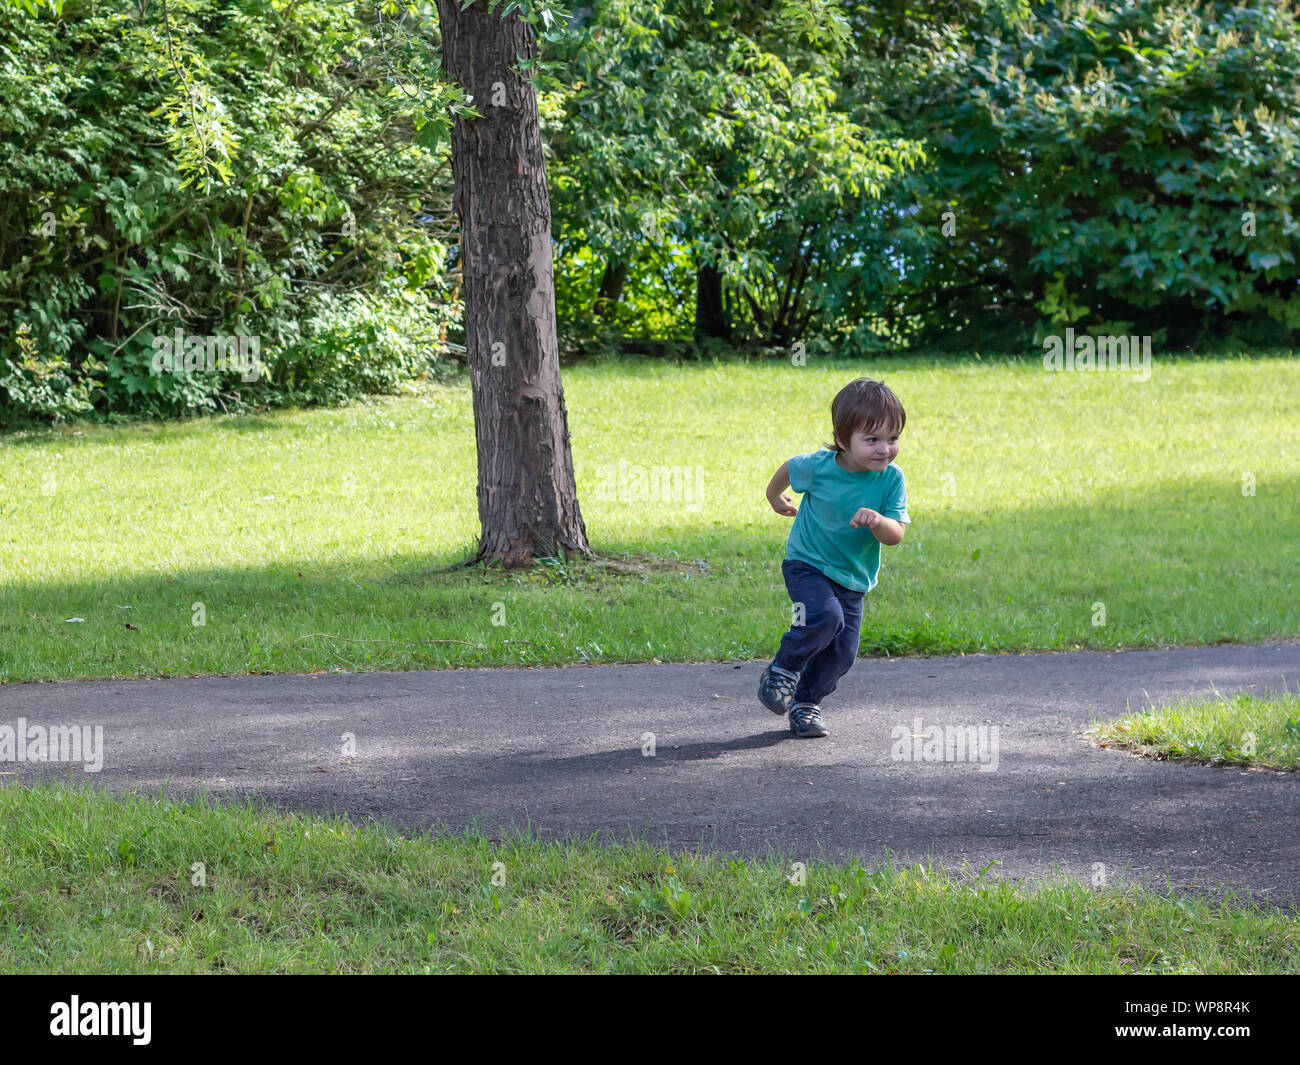 A toddler of about two years of age makes an abrupt turn to take off running on a pathway in a public park. Stock Photo